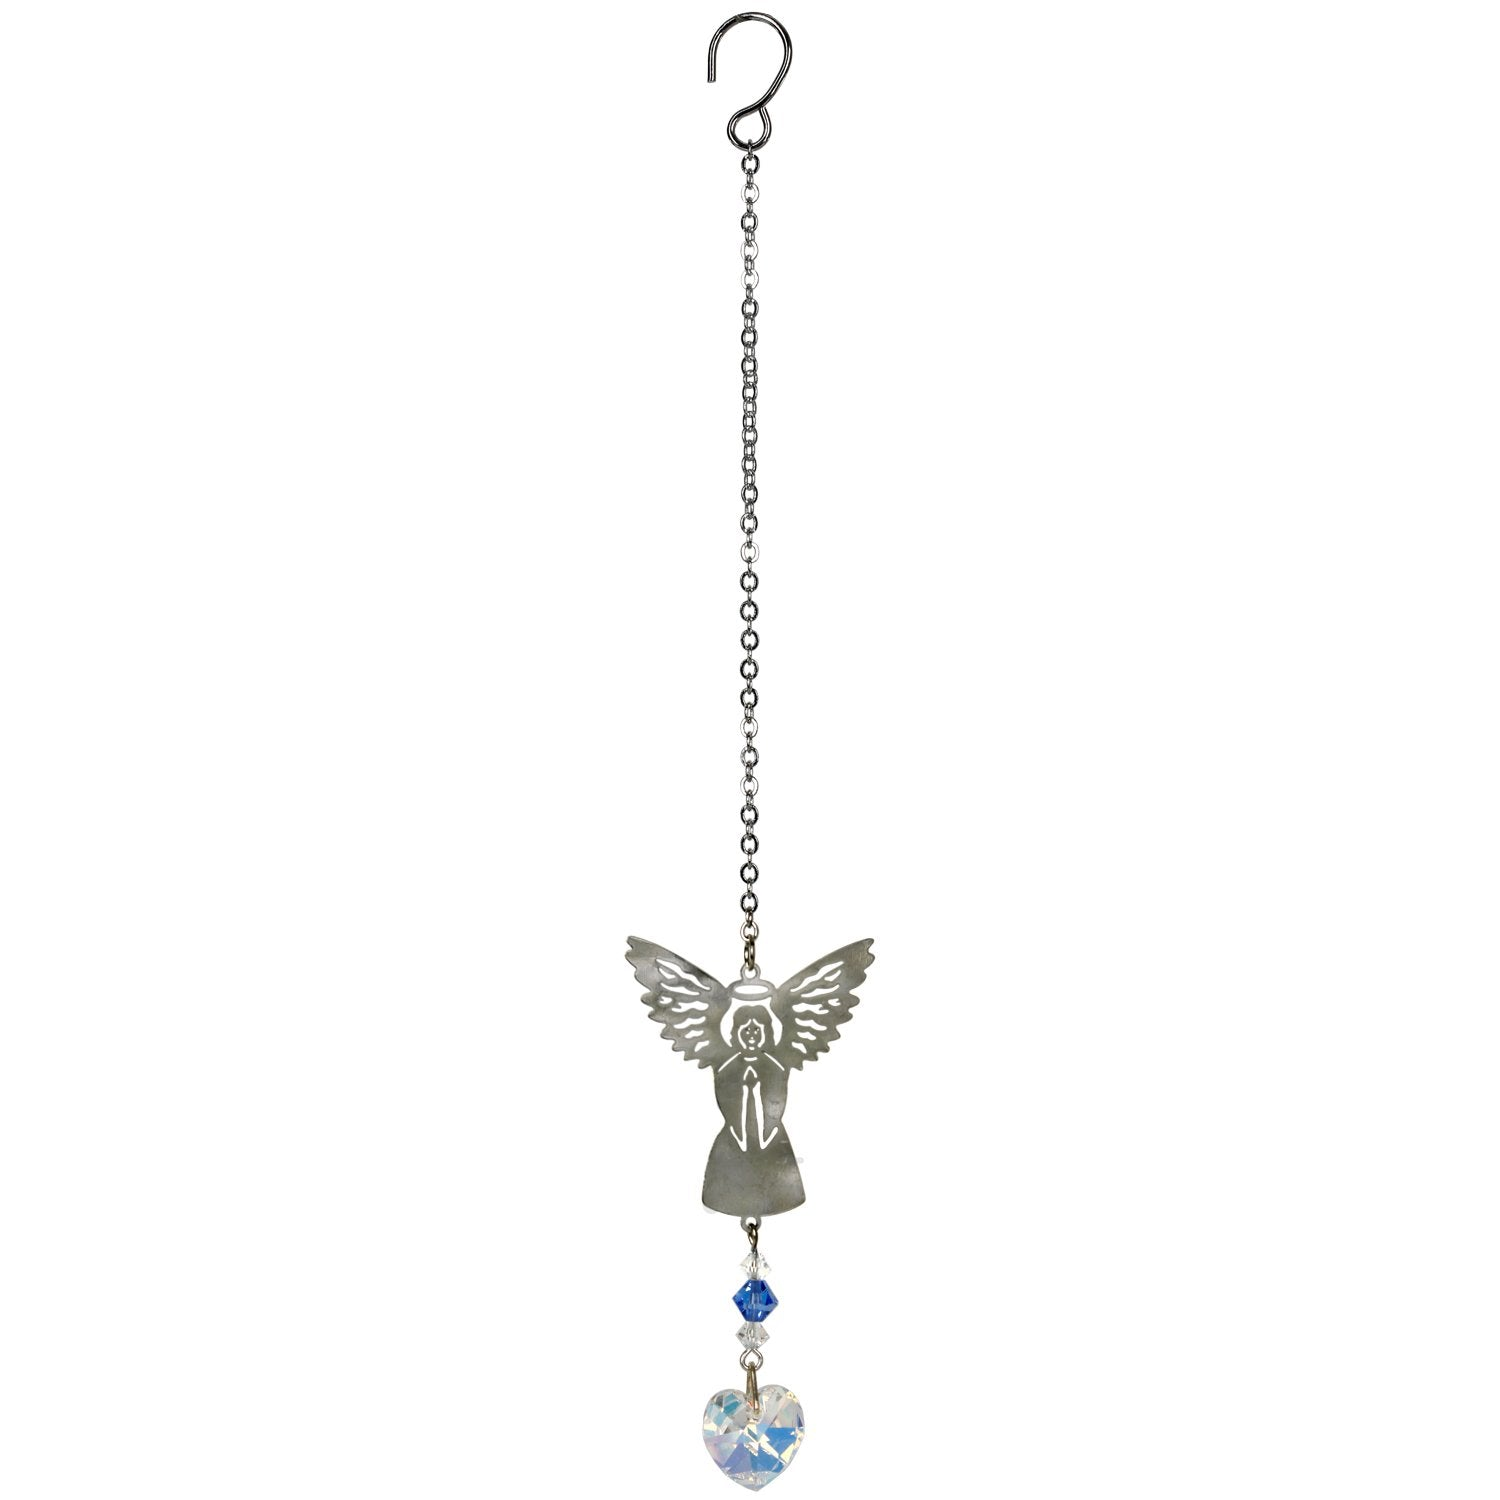 Birthstone Angel Crystal Suncatcher - September full product image